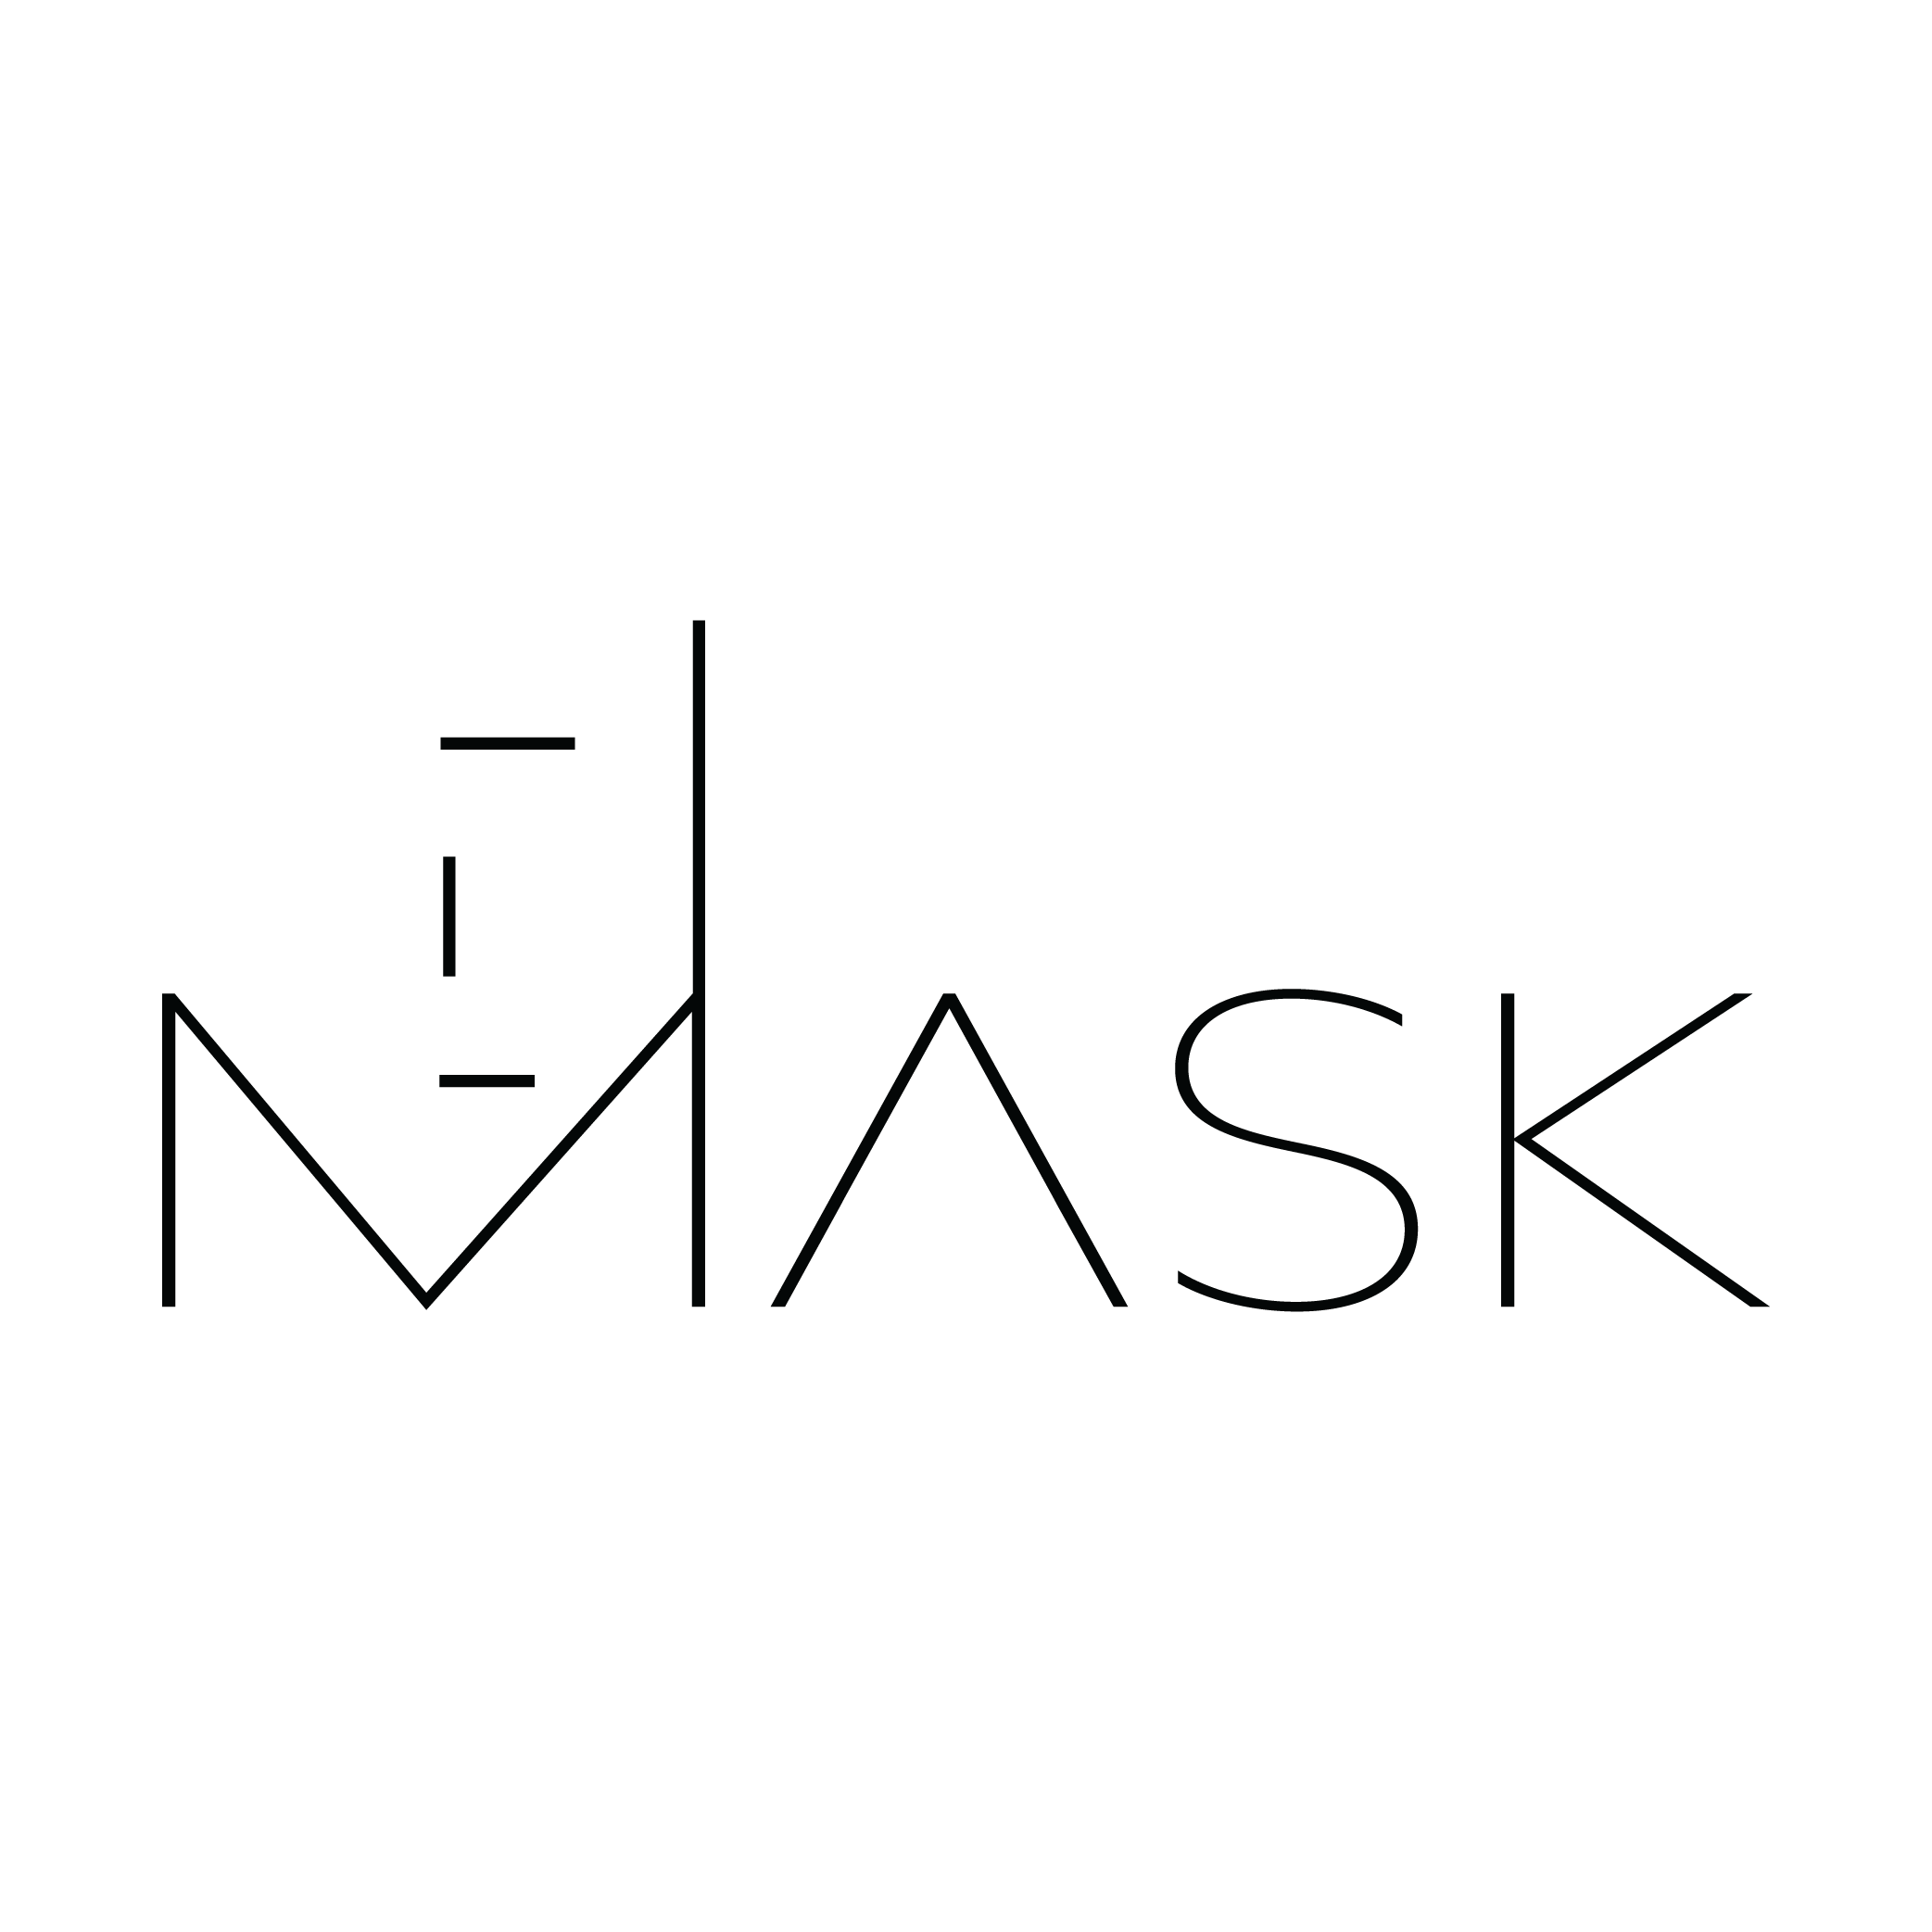 Mask_MASK Concepts2.png